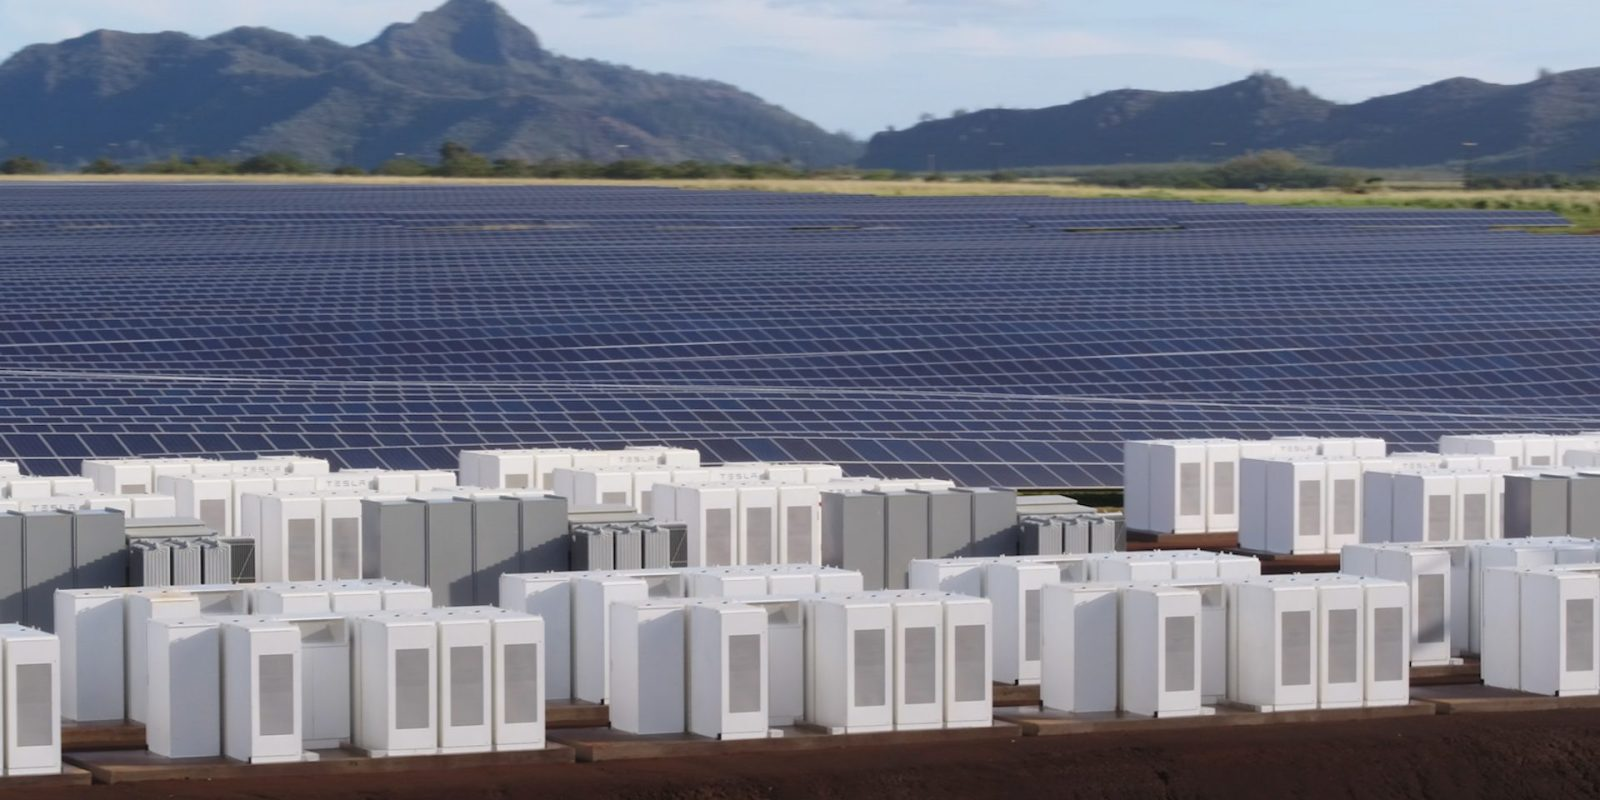 Tesla Delivers the World's Largest Battery One Month Ahead of Schedule